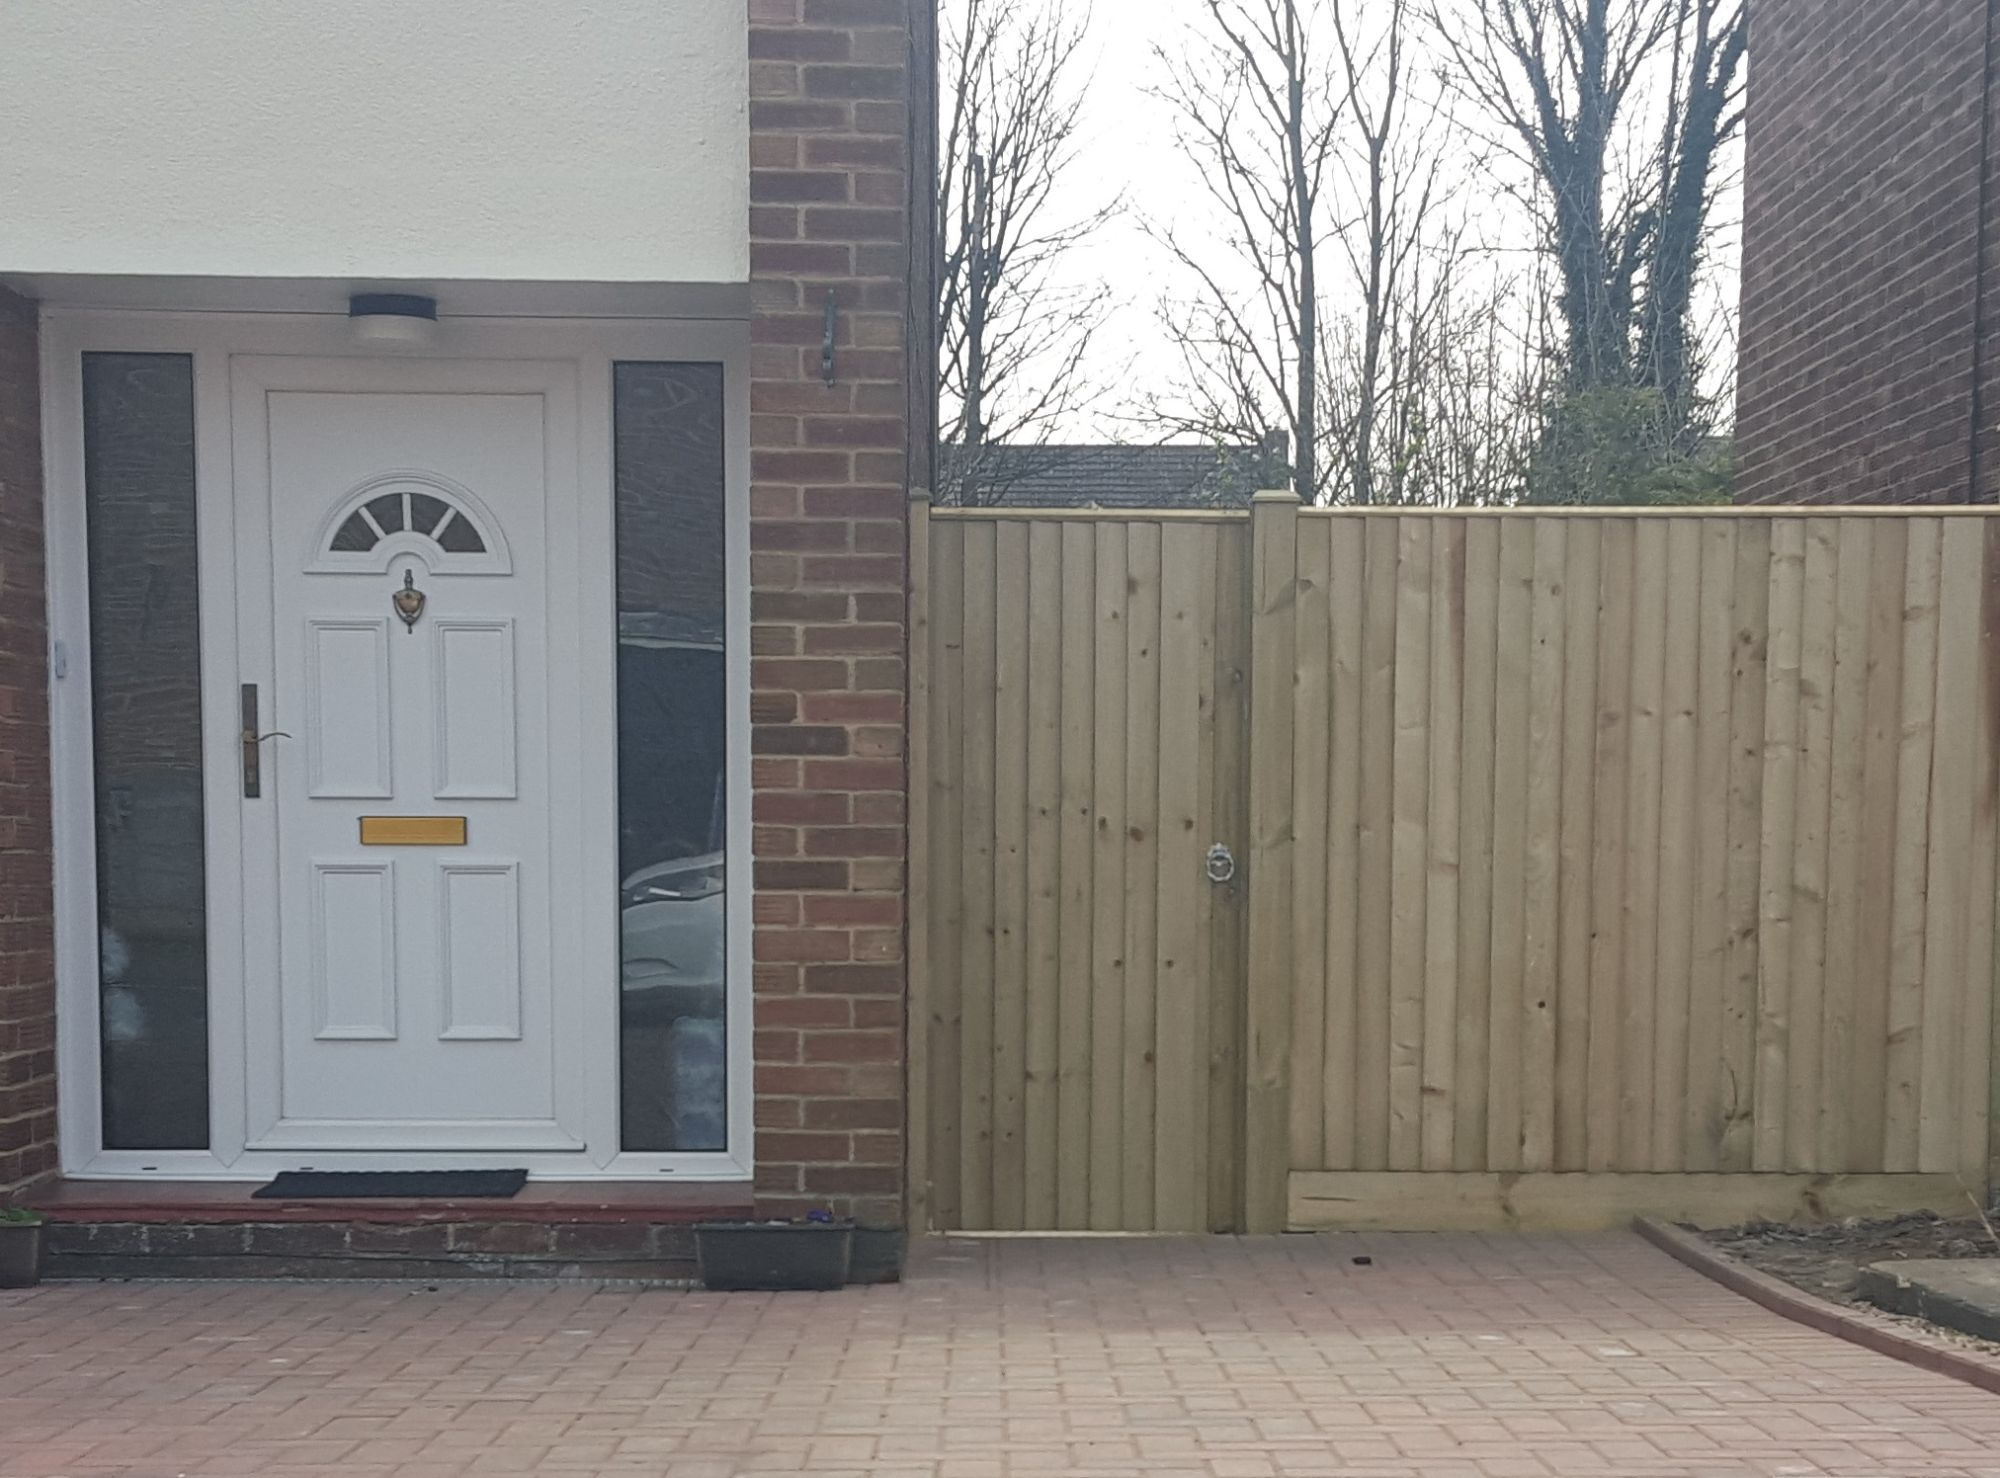 CLOSE BOARD GATE AND FENCE